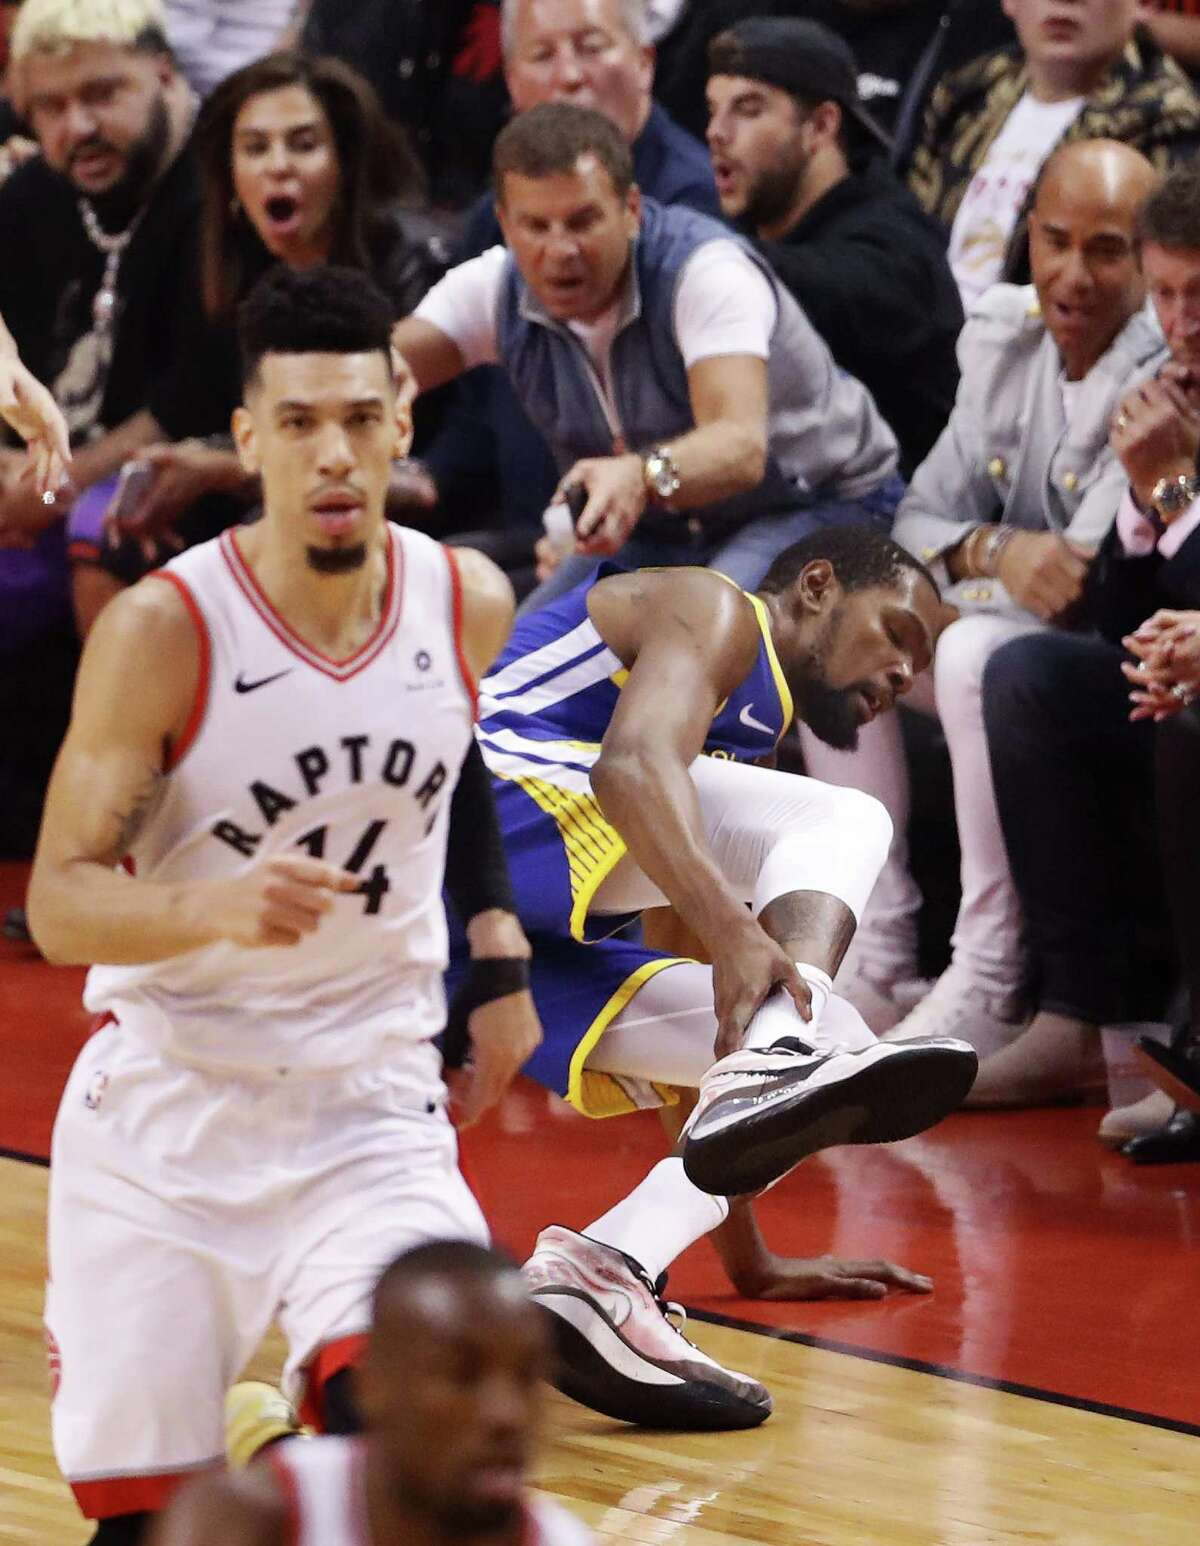 Golden State Warriors' Kevin Durant suffers an achilles injury during Warriors' 106-105 win over Toronto Raptors in NBA Finals' Game 5 at Scotiabank Arena in Toronto, Ontario, on Monday, June 10, 2019.